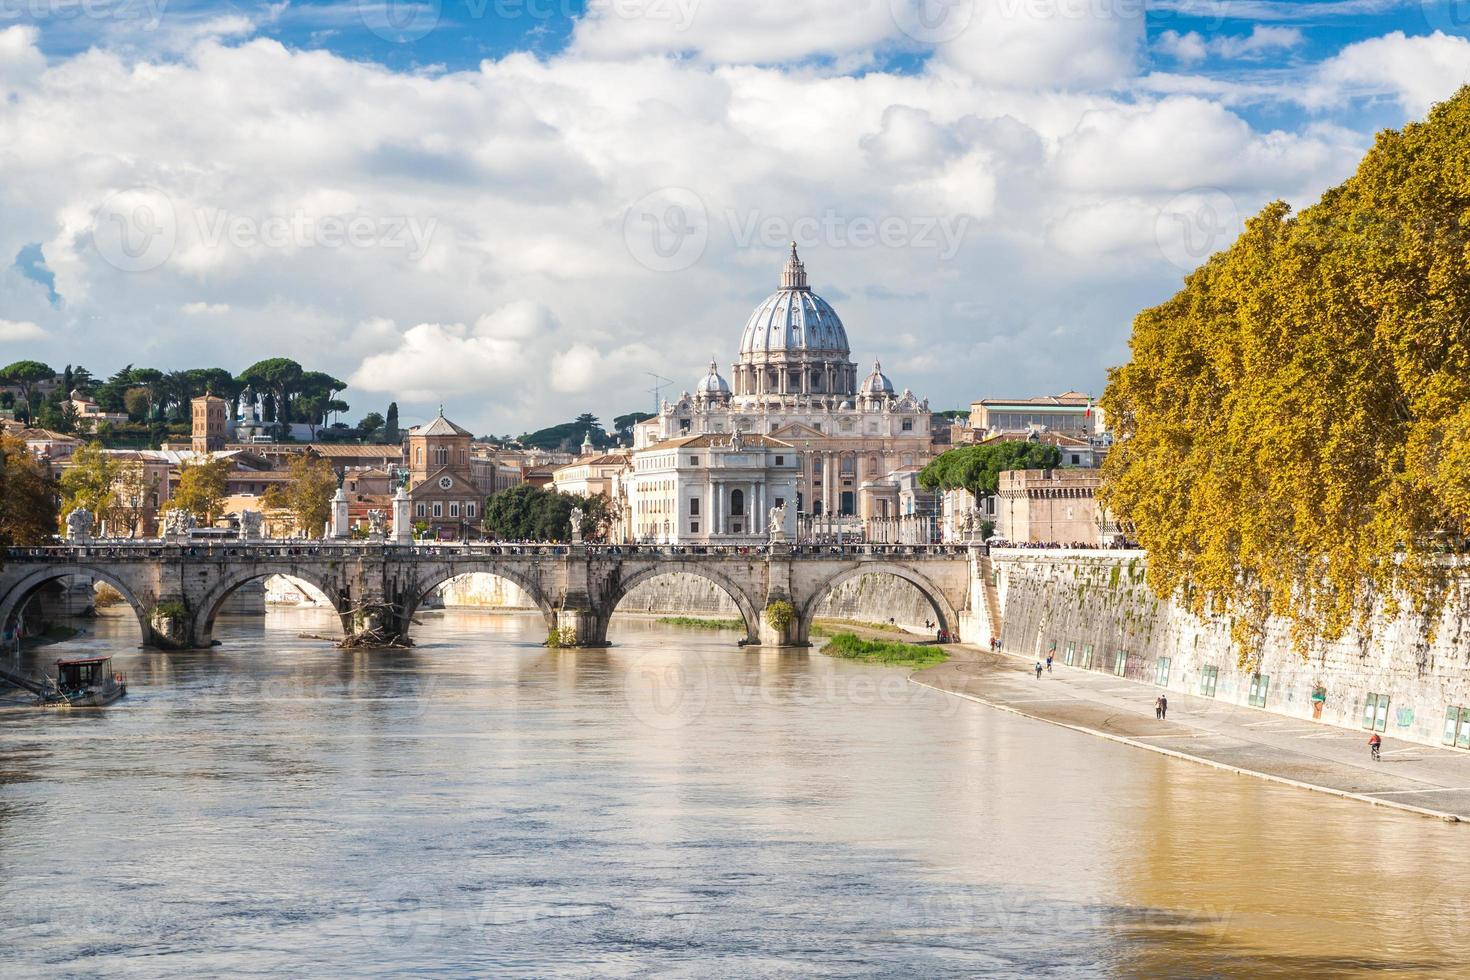 St. Peter's Basilica in Rome, Italy photo